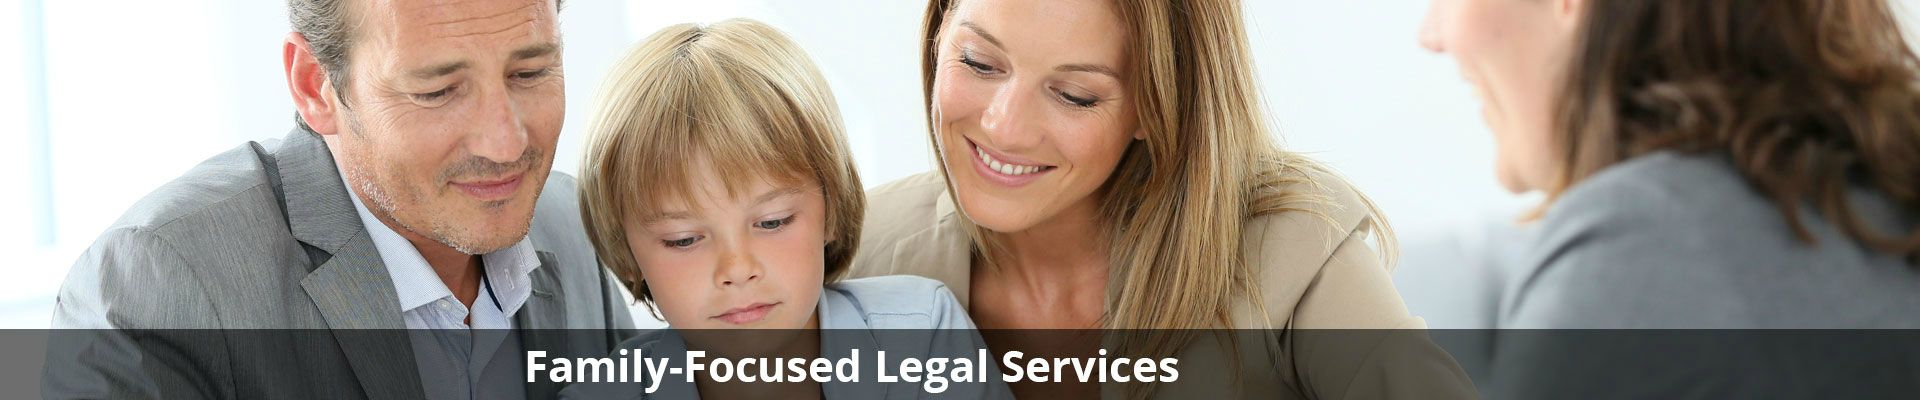 family focused legal services